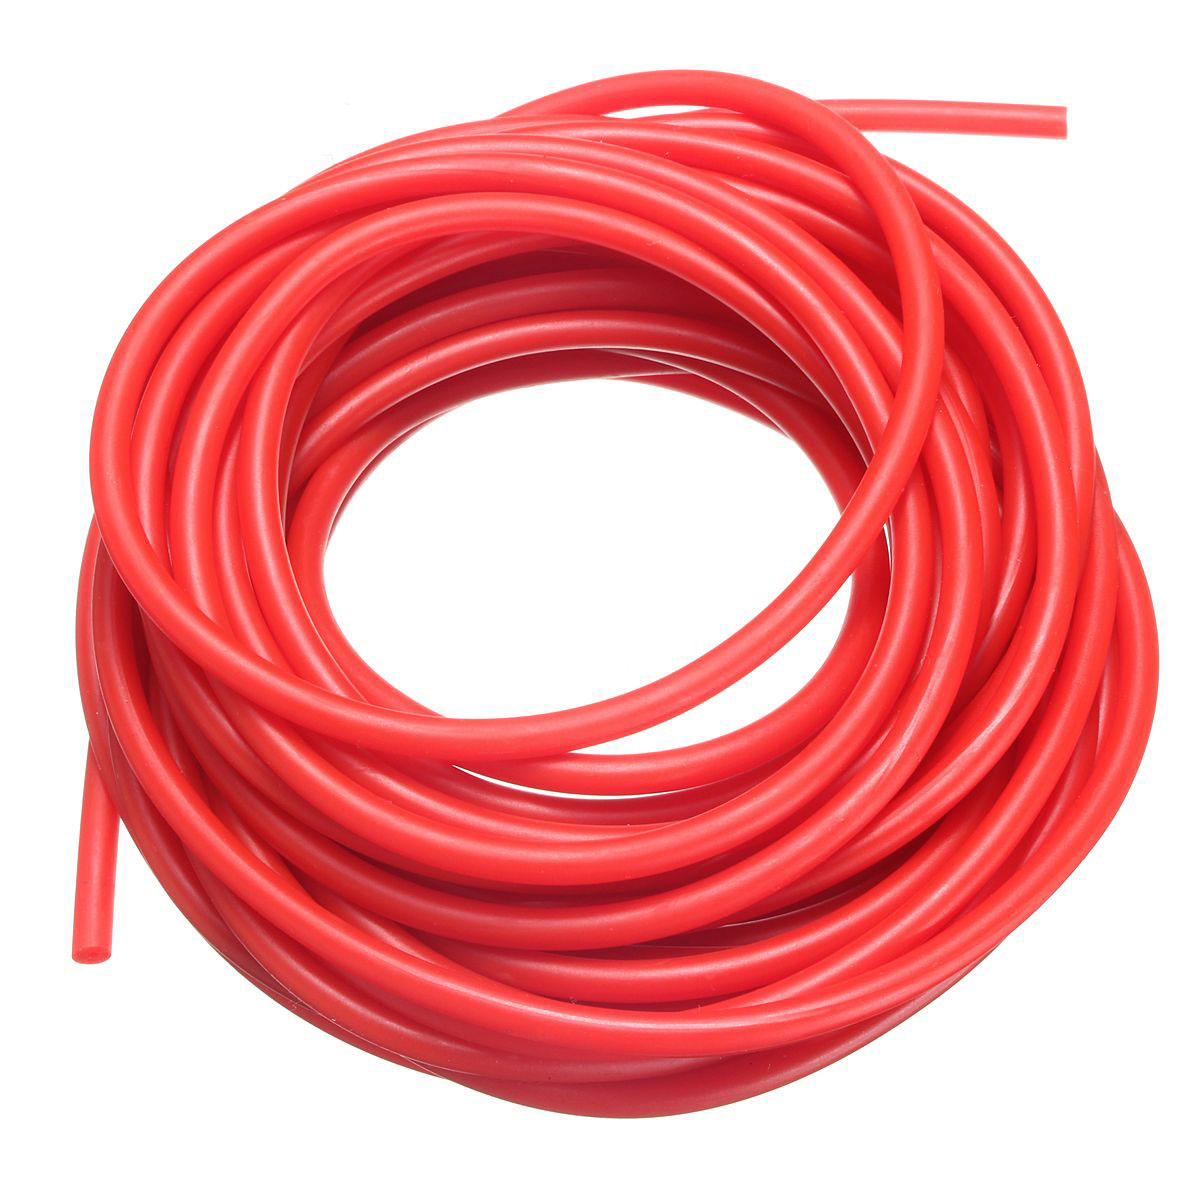 Rubber Exercise Tubing Bands: Tubing Exercise Rubber Resistance Band Catapult Dub Dub